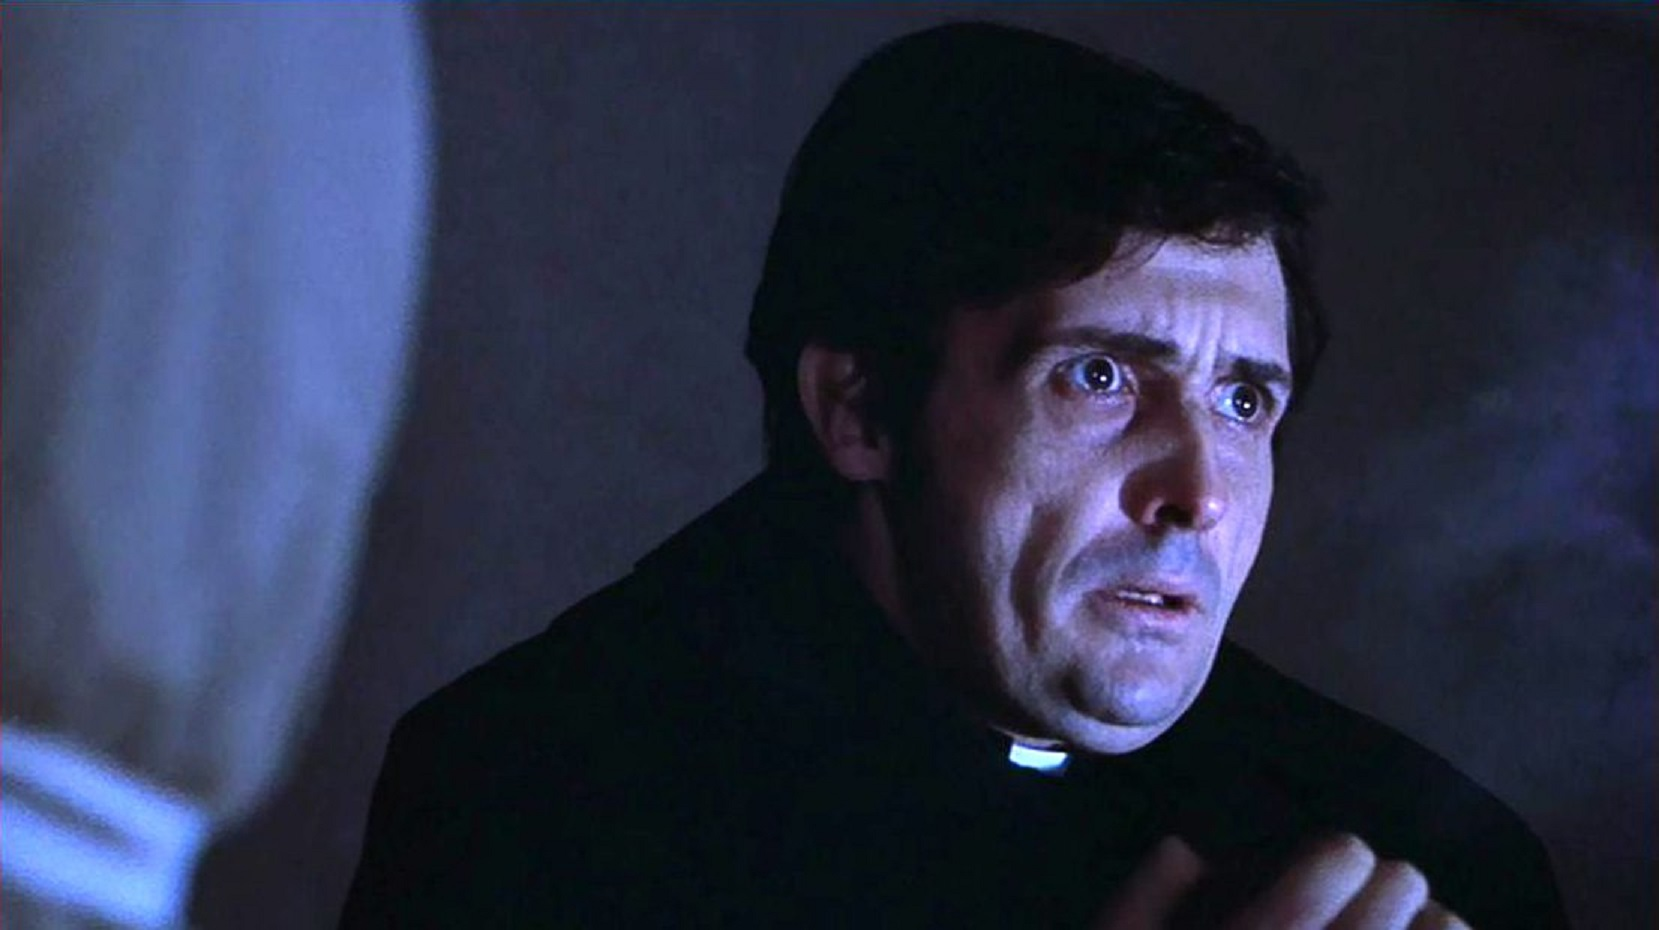 Jason Miller as Father Damien Karras, troubled by matters of faith in The Exorcist (1973)